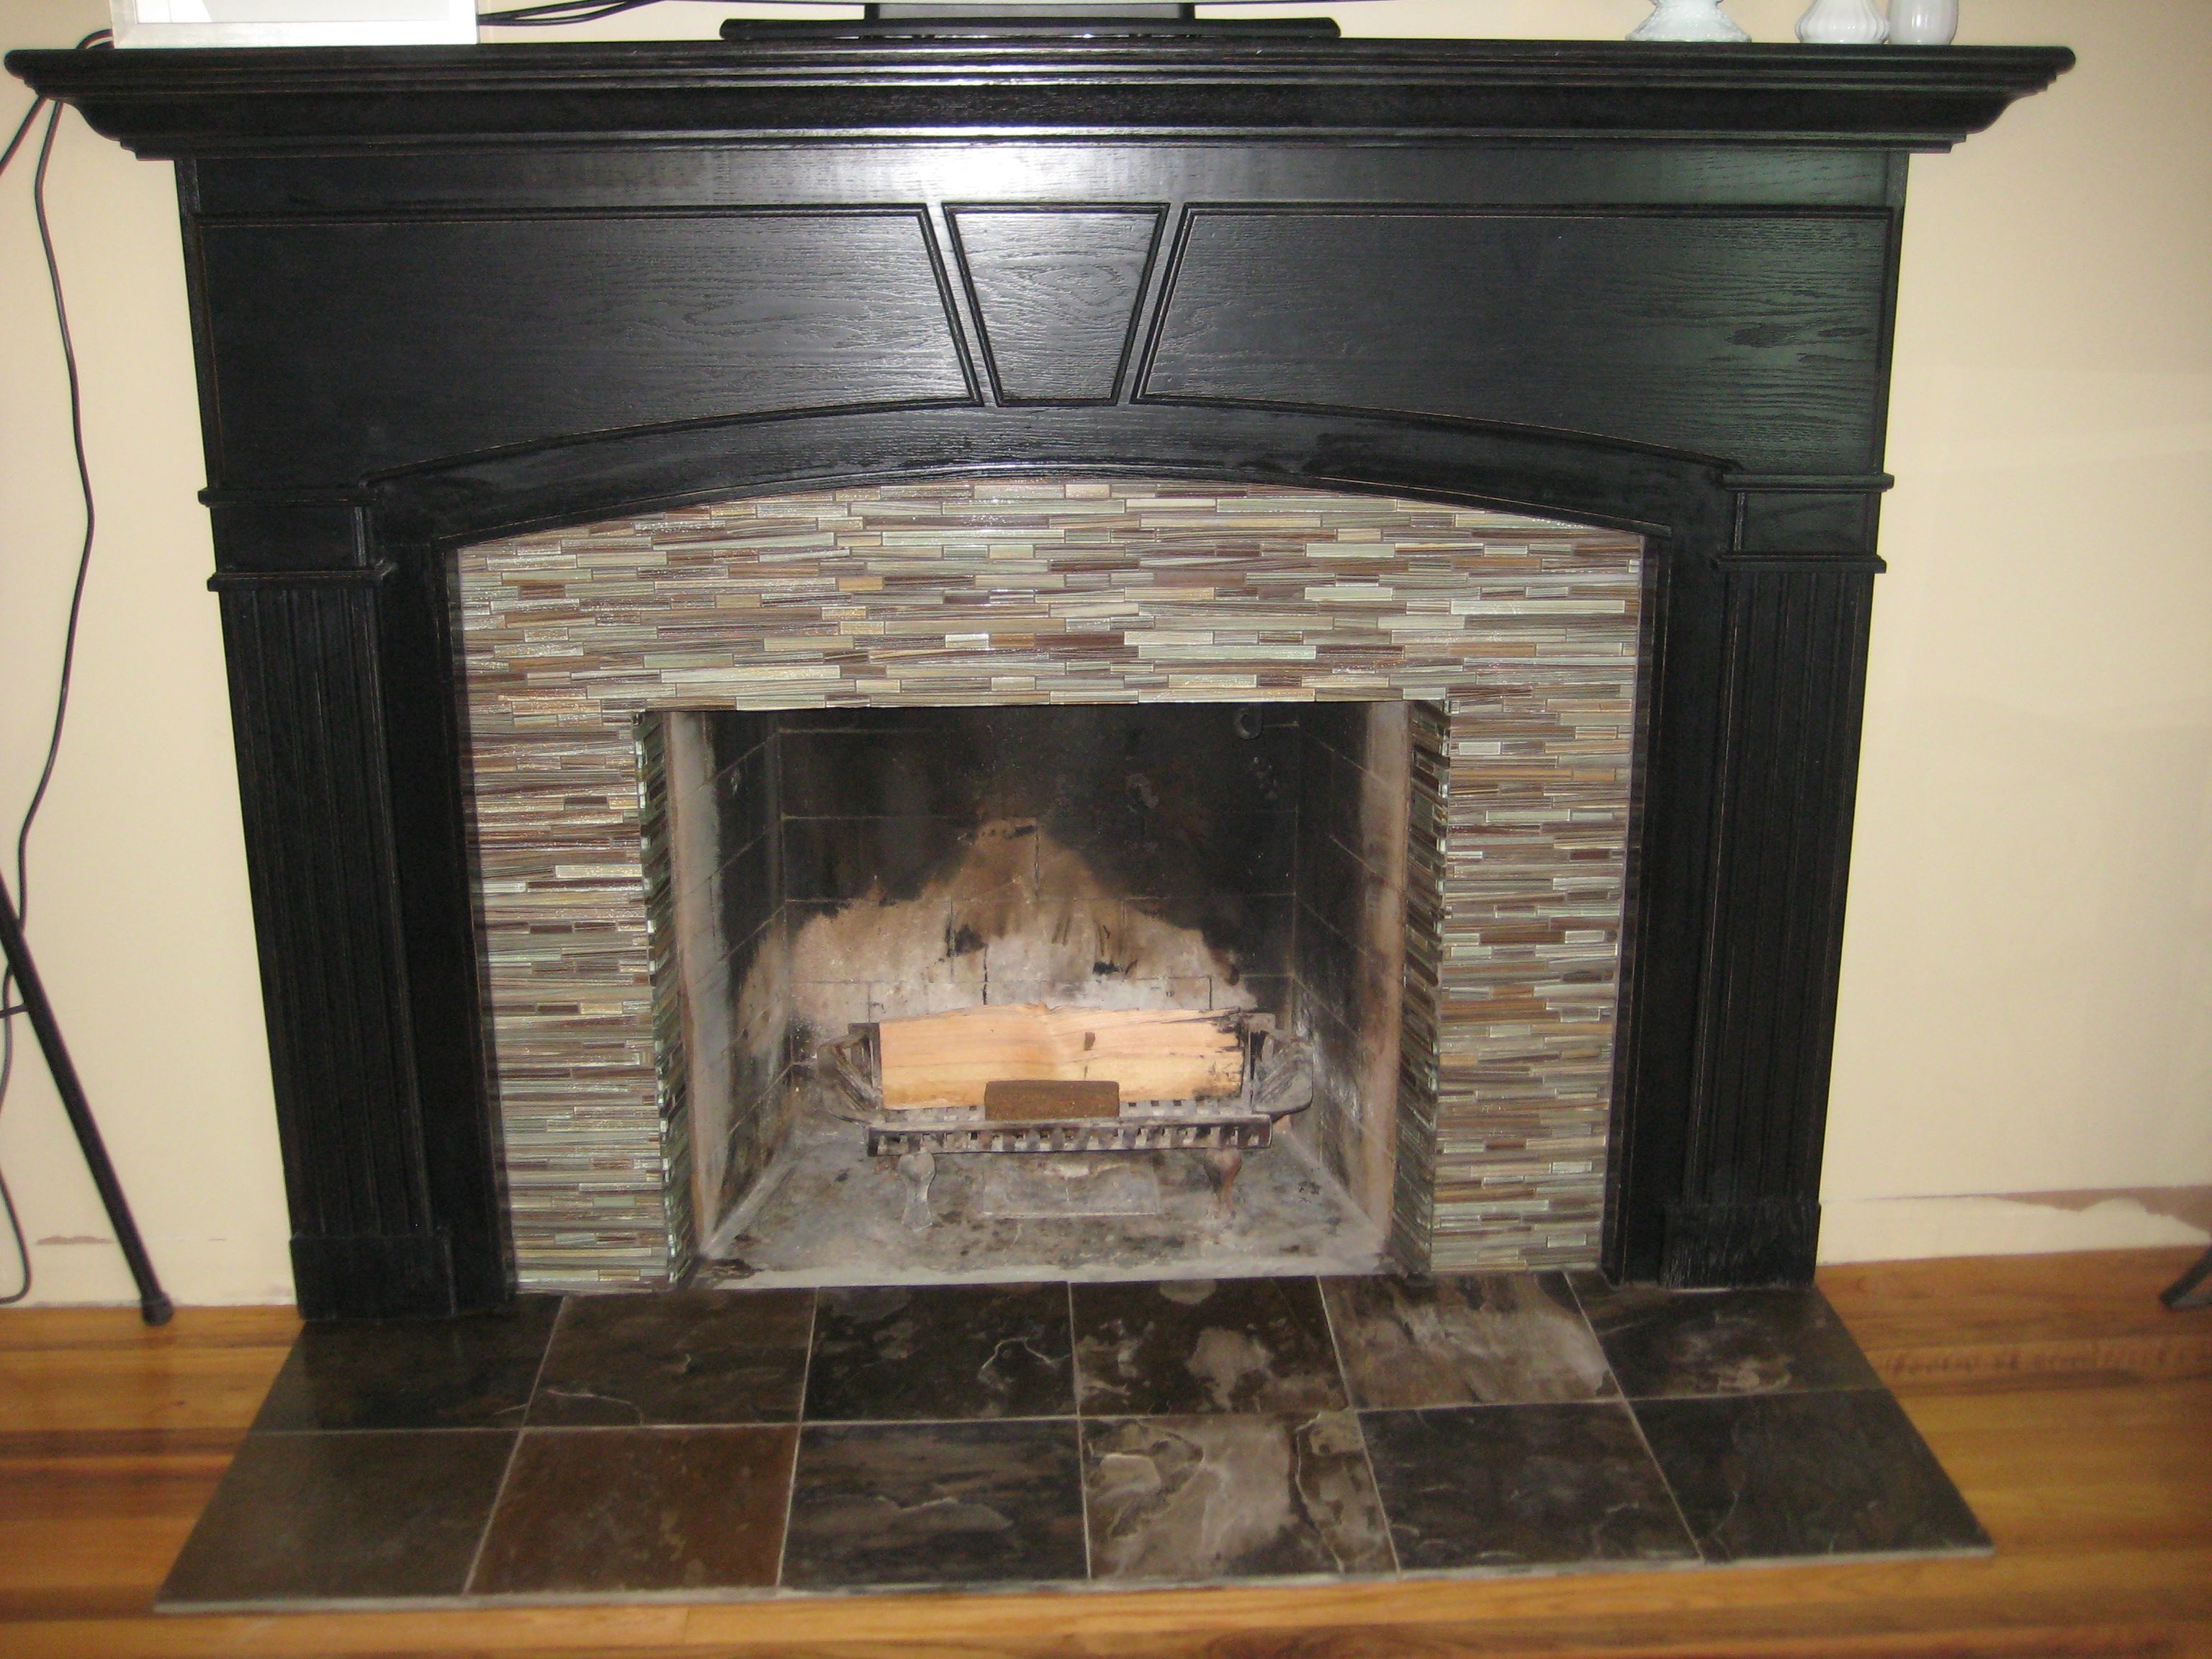 Mosaic tile fireplace surround ideas take to make the fireplace accessories furniturestunning glass mosaic fireplace surround with black wooden fireplace mantle and ceramic tile floorbeautiful glass mosaic fireplace dailygadgetfo Images